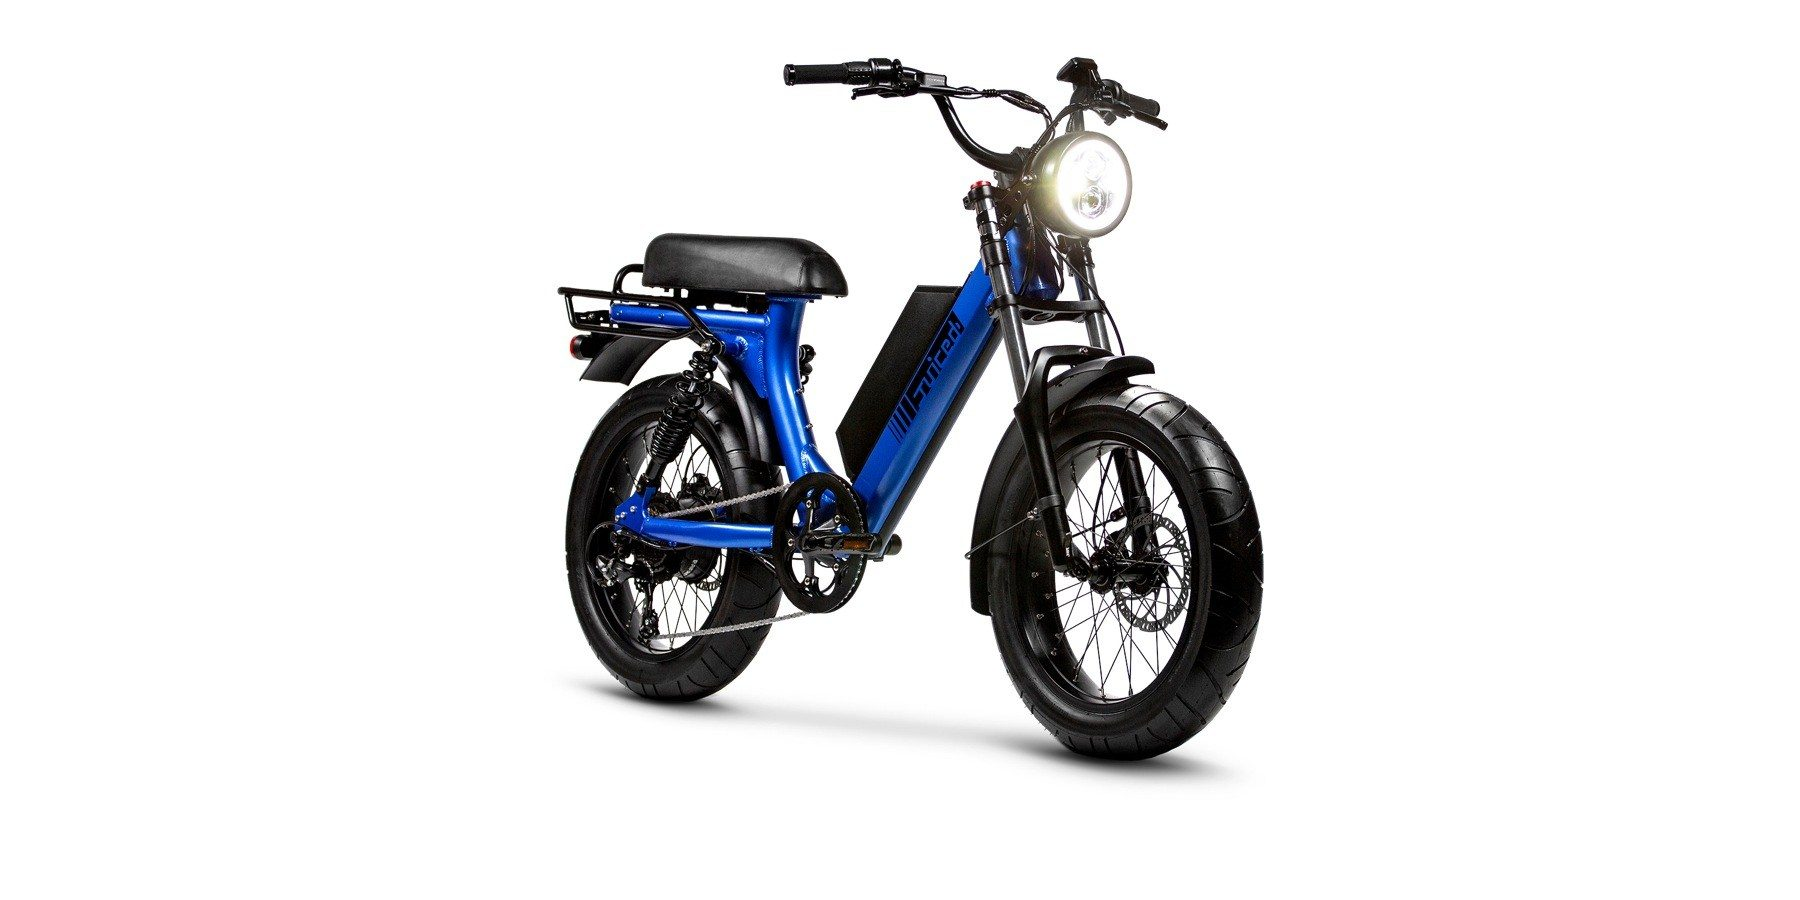 Delivery of Juiced Scorpion scooter-style electric bikes at 28 mph starts